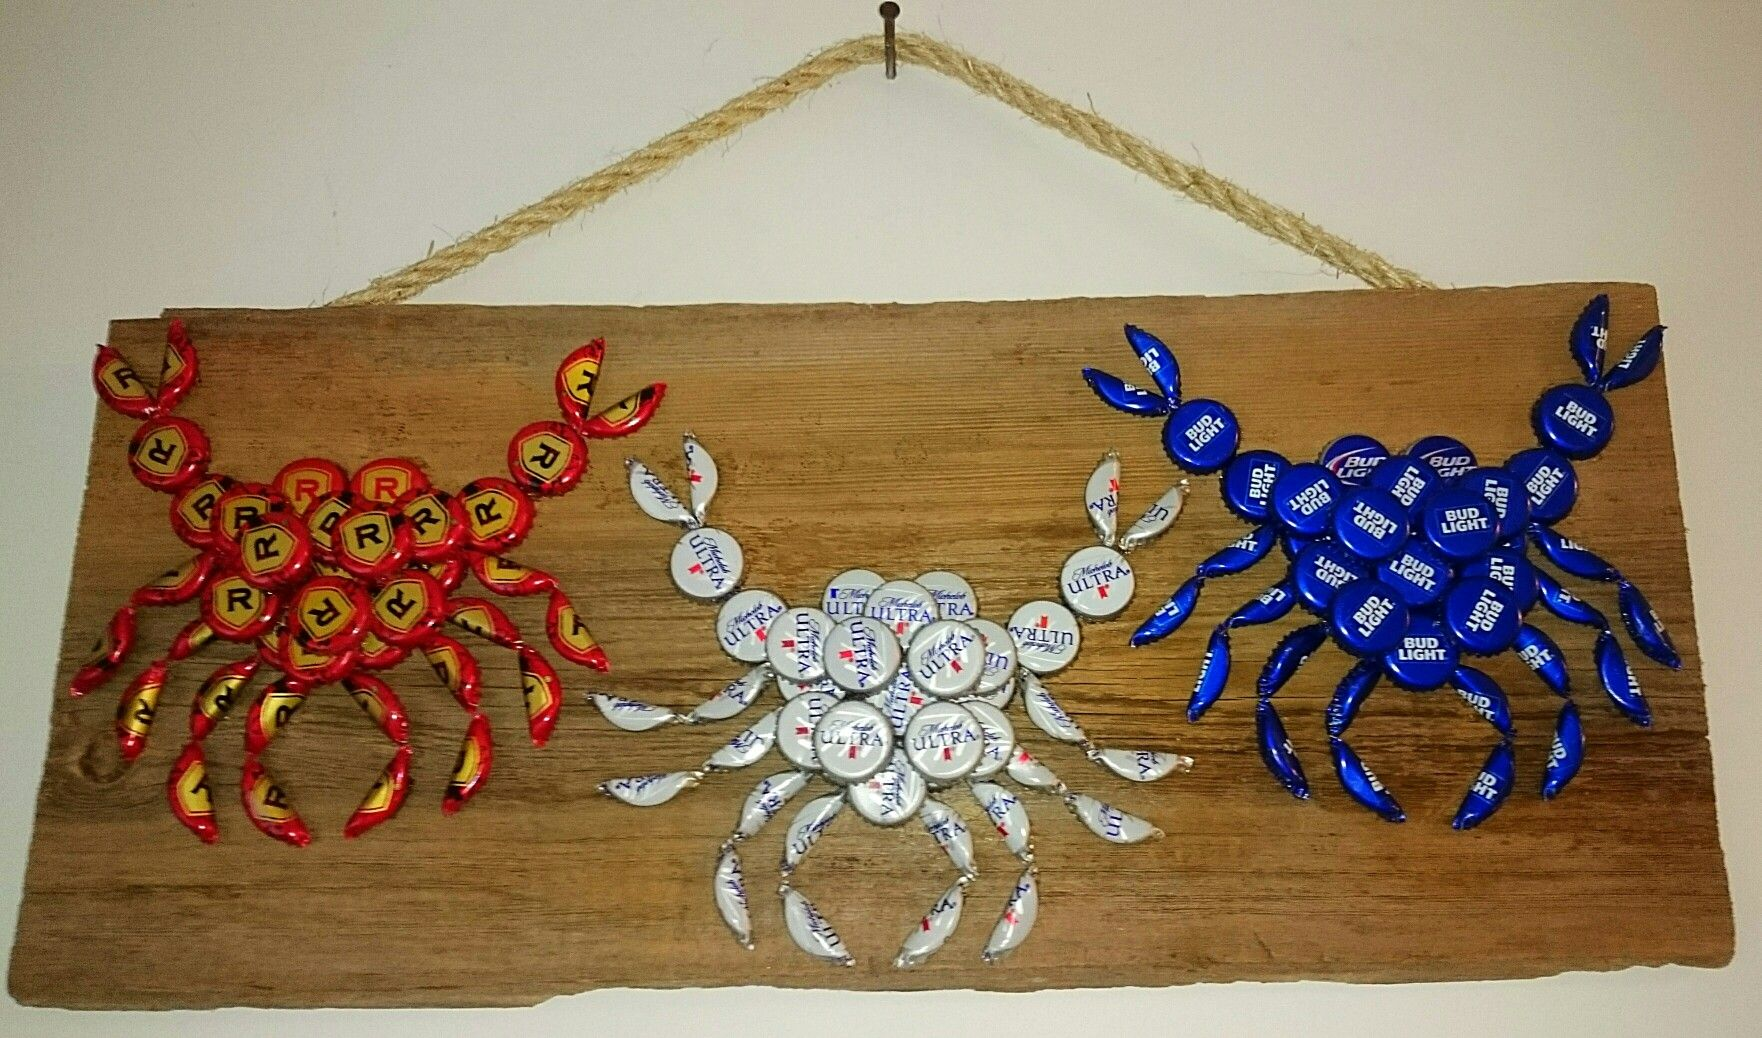 The Crabby Crabs Bottle Caps Wall Hanging Com Imagens Tampas